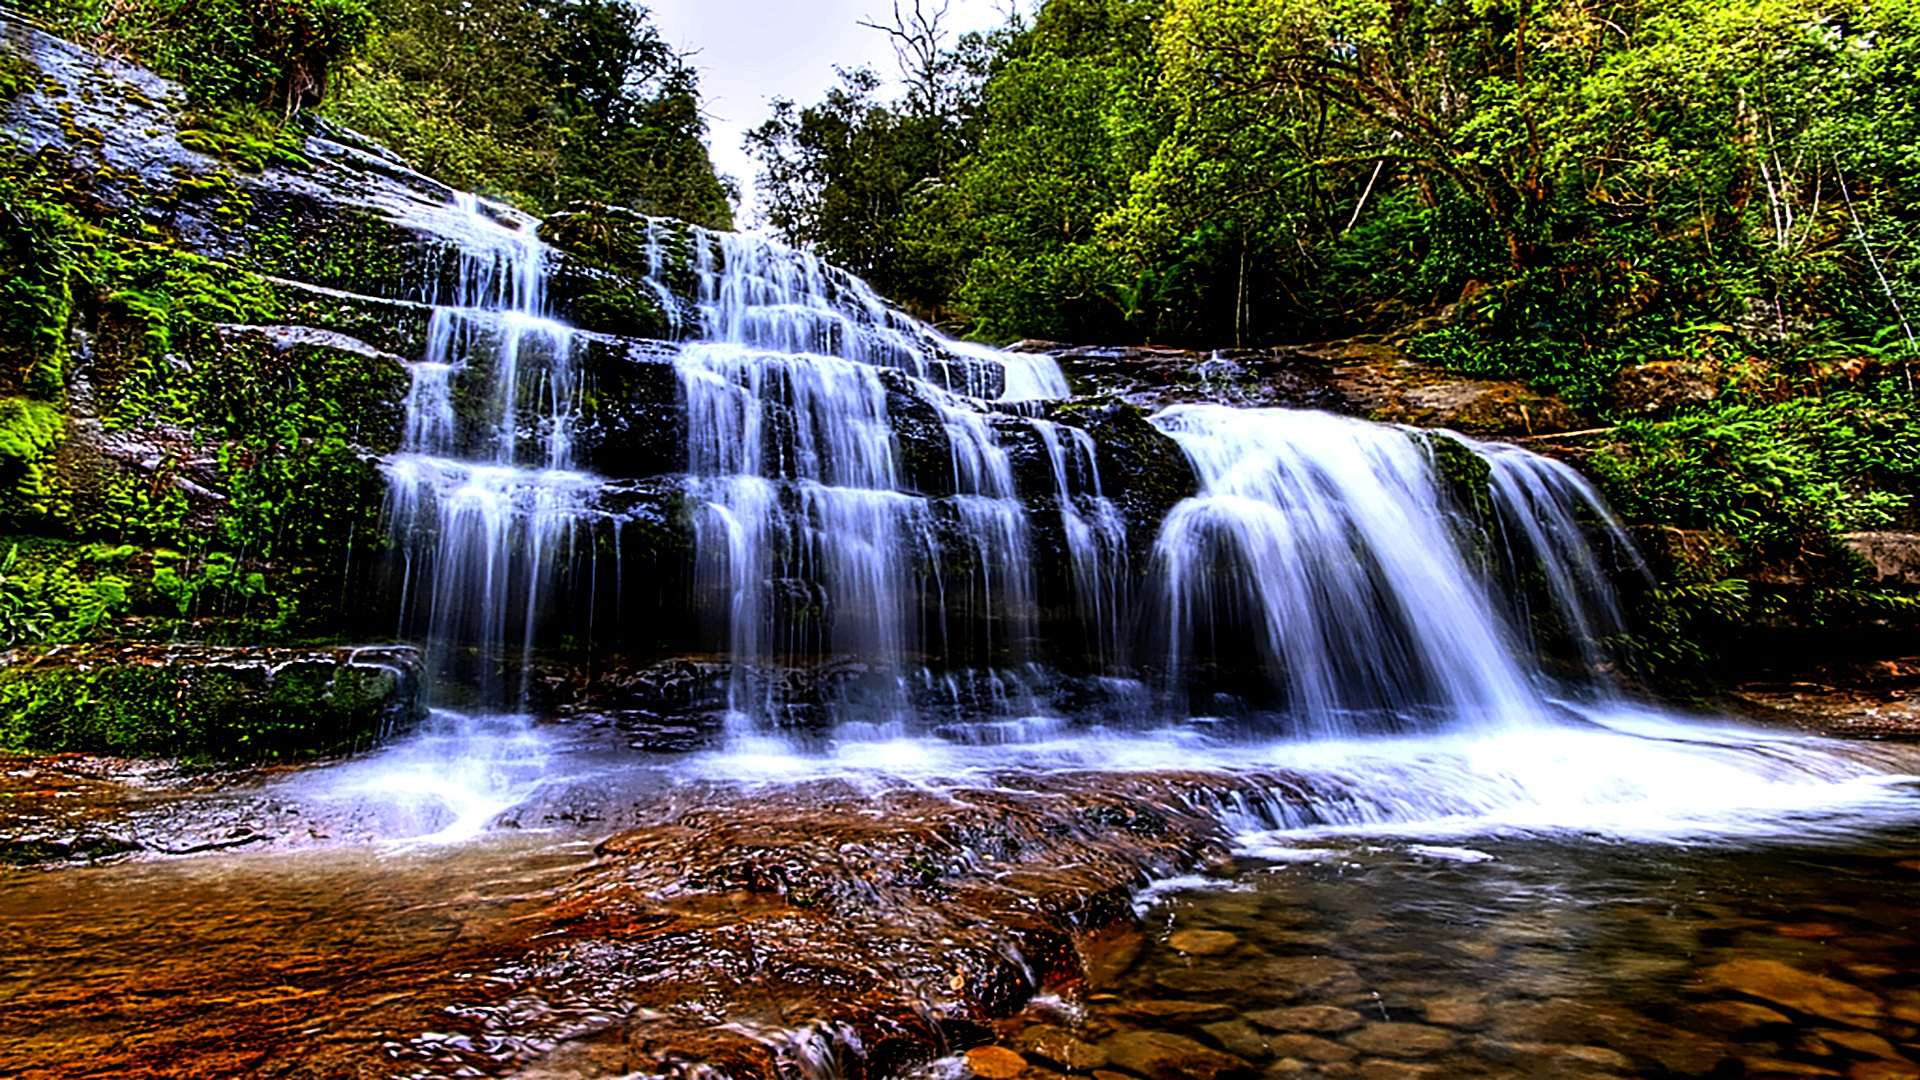 waterfall live wallpaper download which is under the waterfall